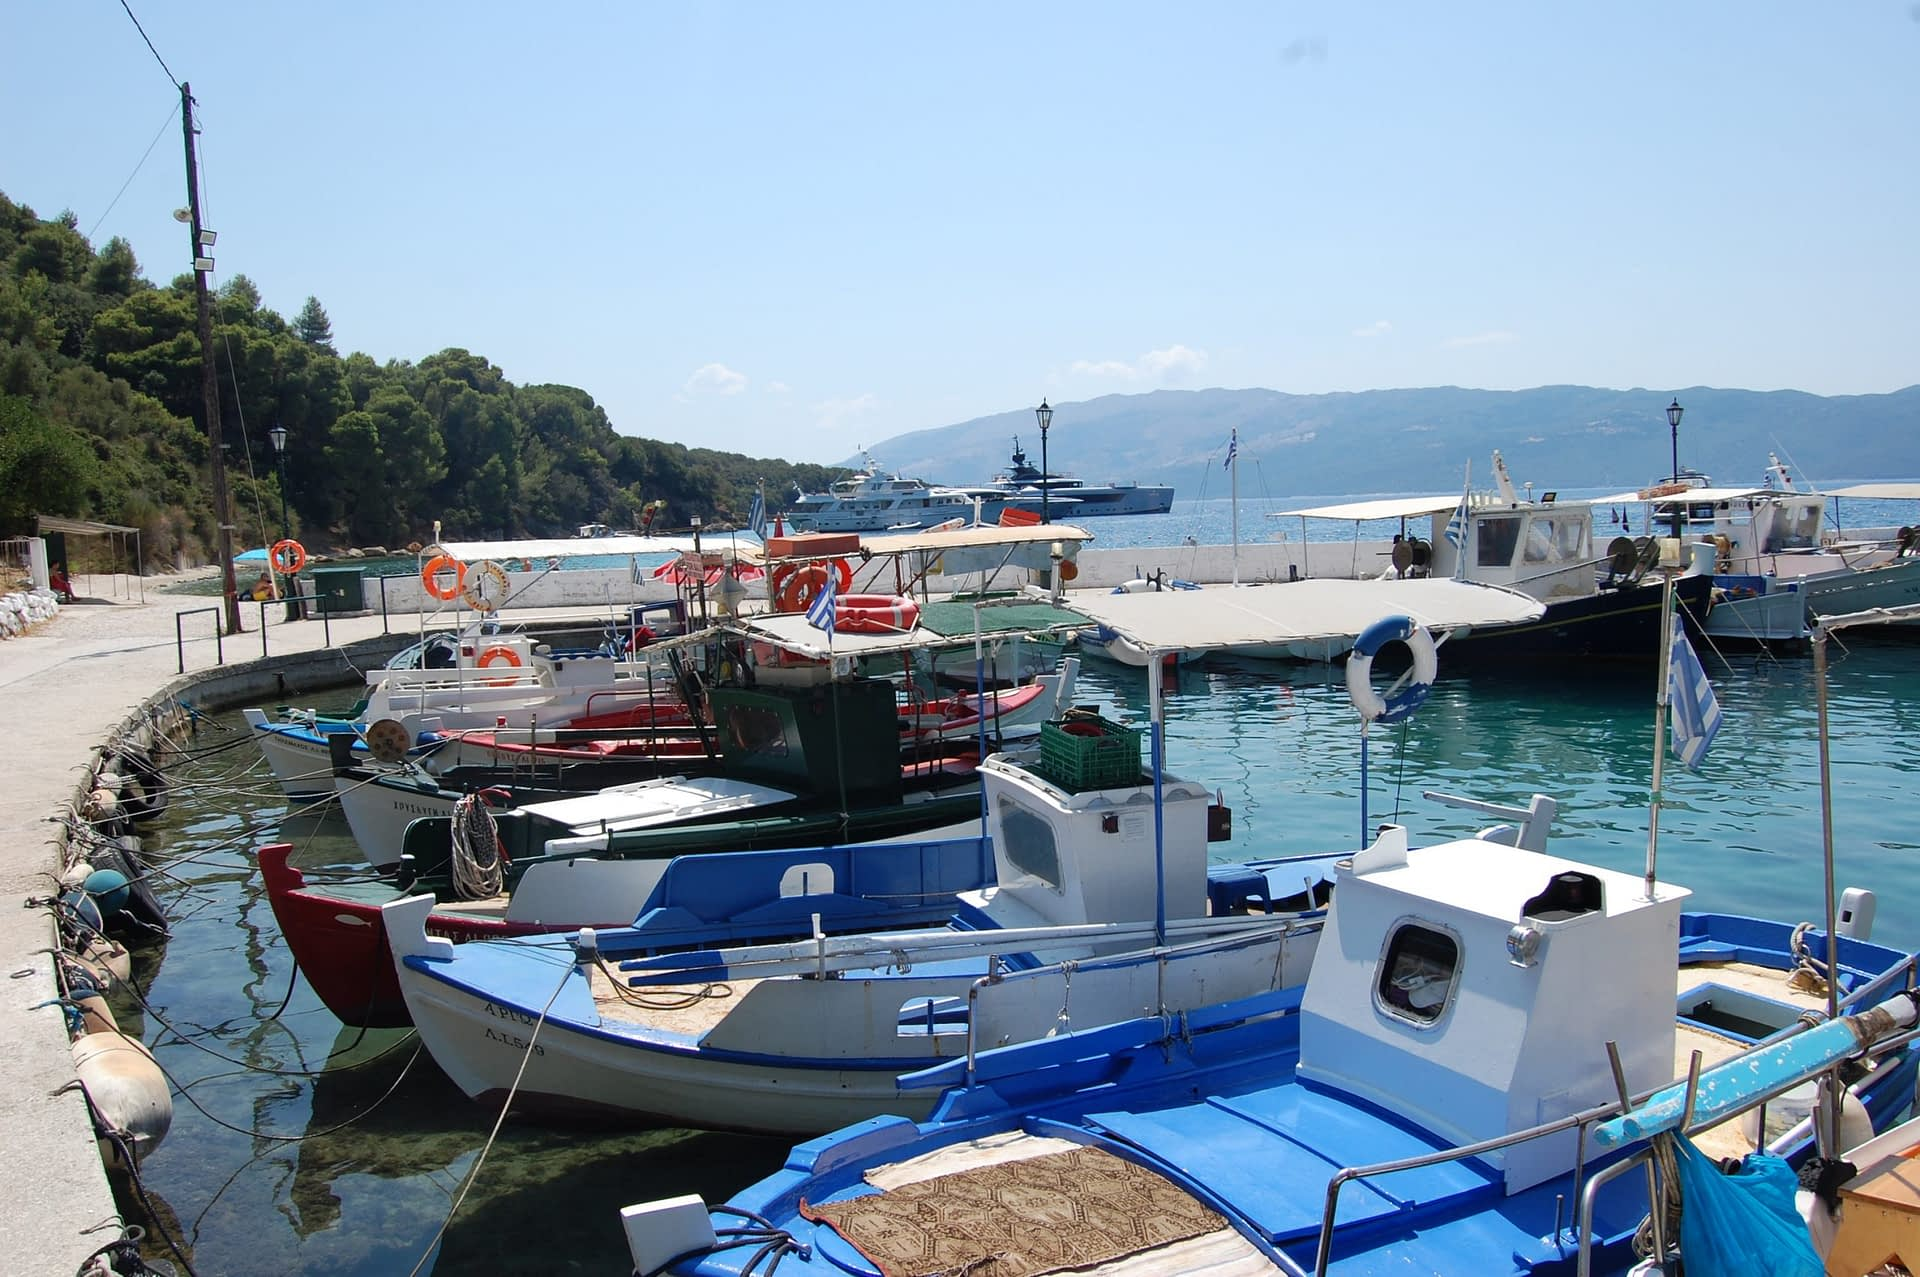 Polis bay with docked fishing boats